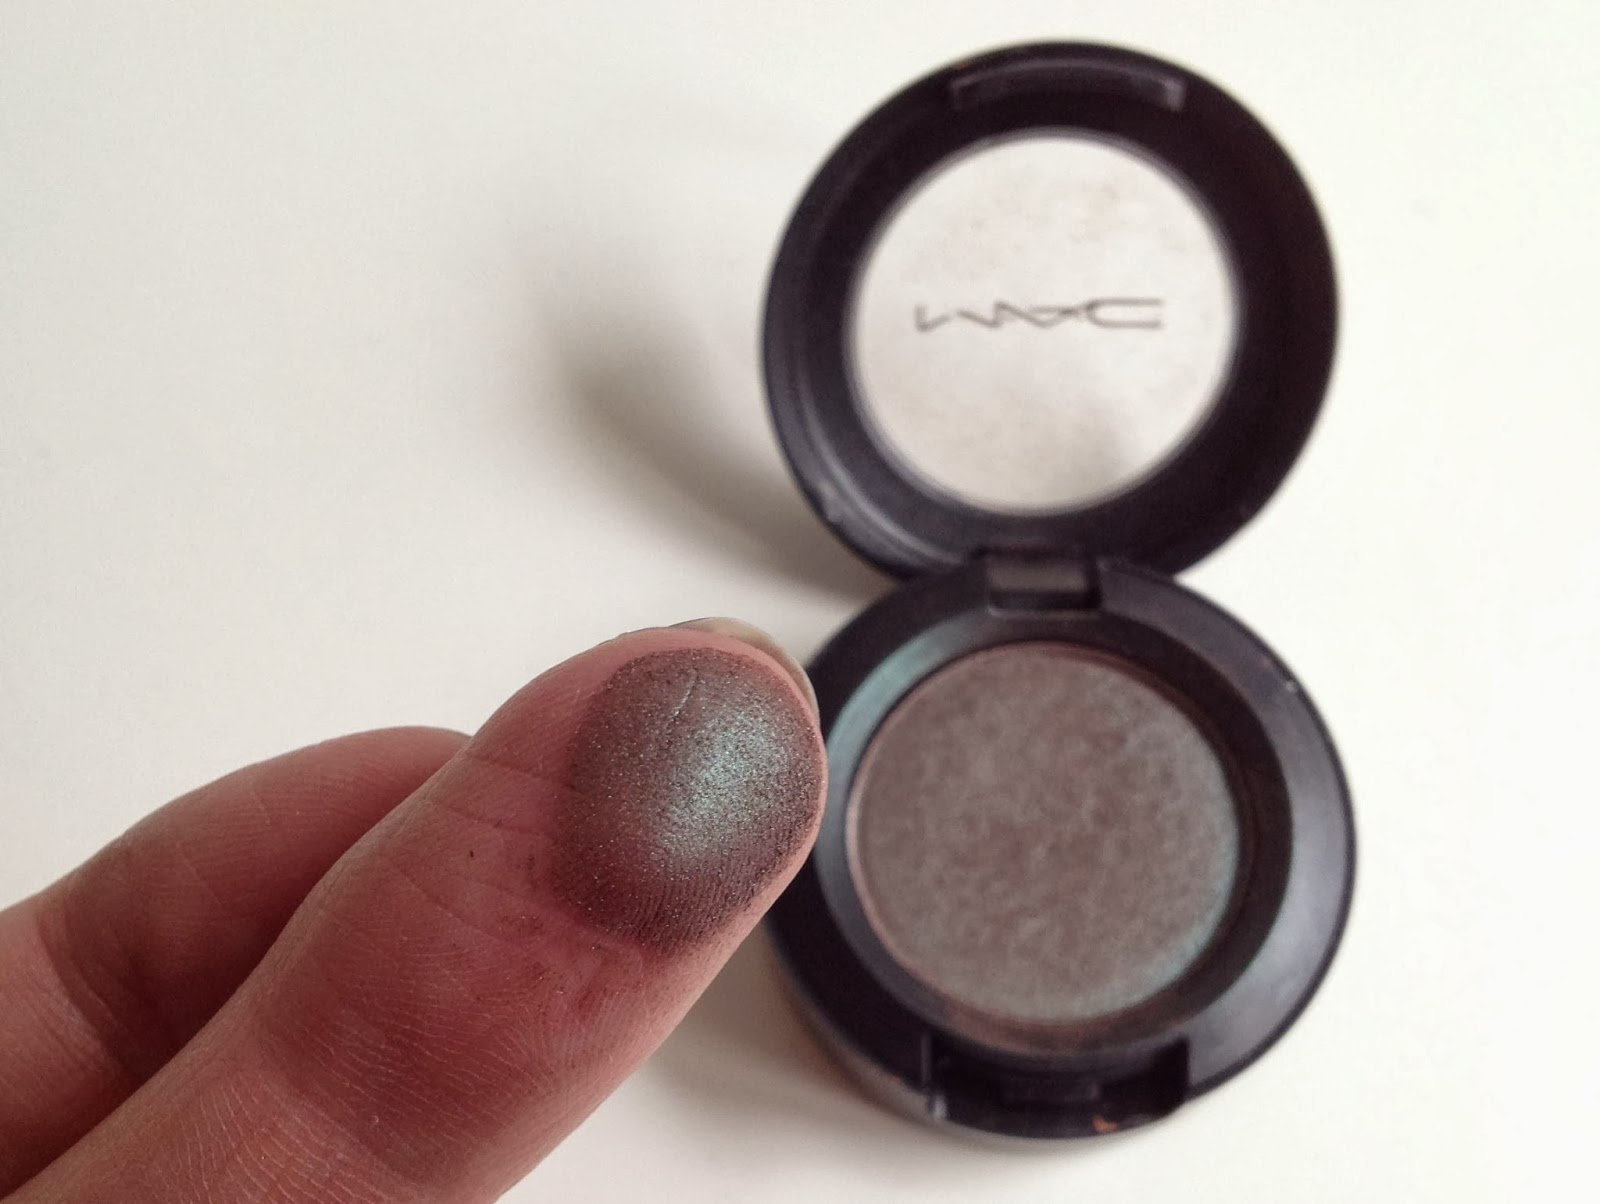 MAC Club Eyeshadow duo chrome effect